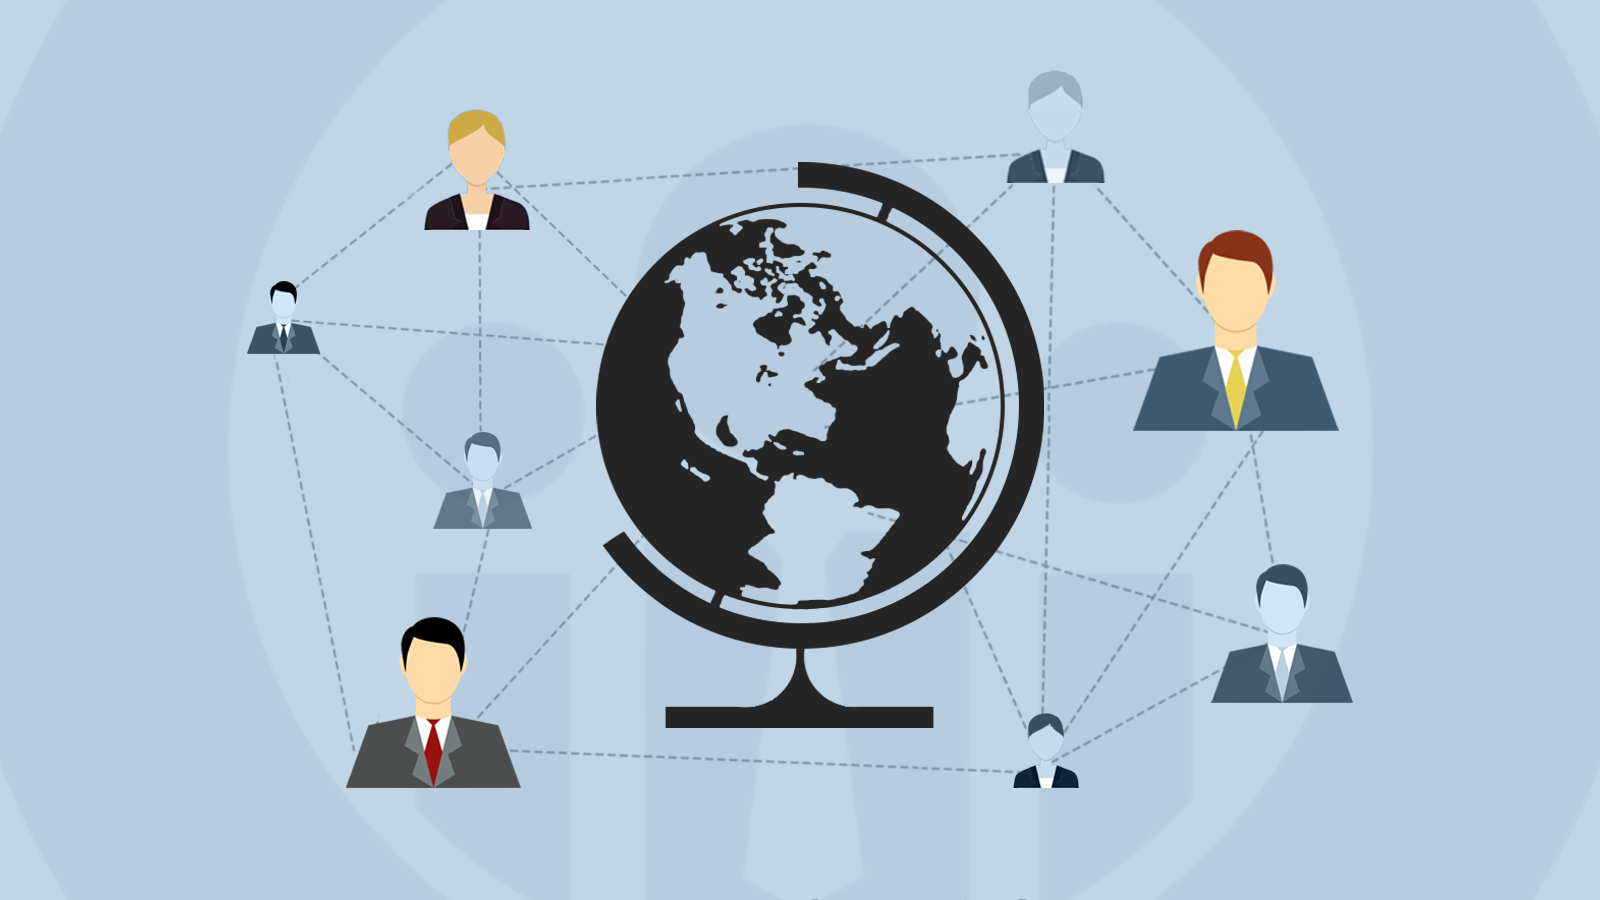 Team Building and Management for Cross-Cultural Remote Teams